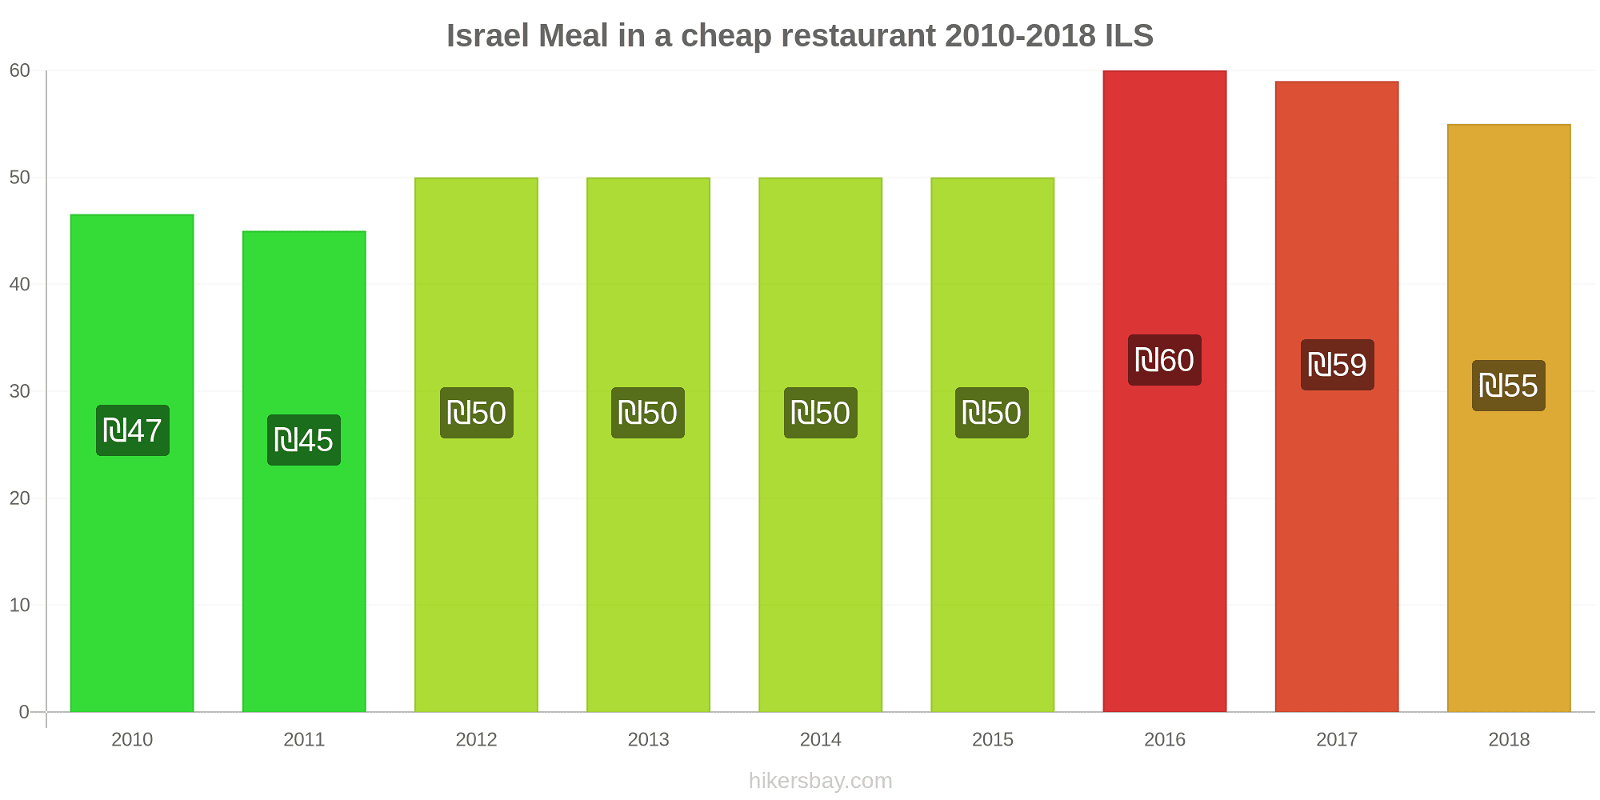 Israel price changes Meal in a cheap restaurant hikersbay.com